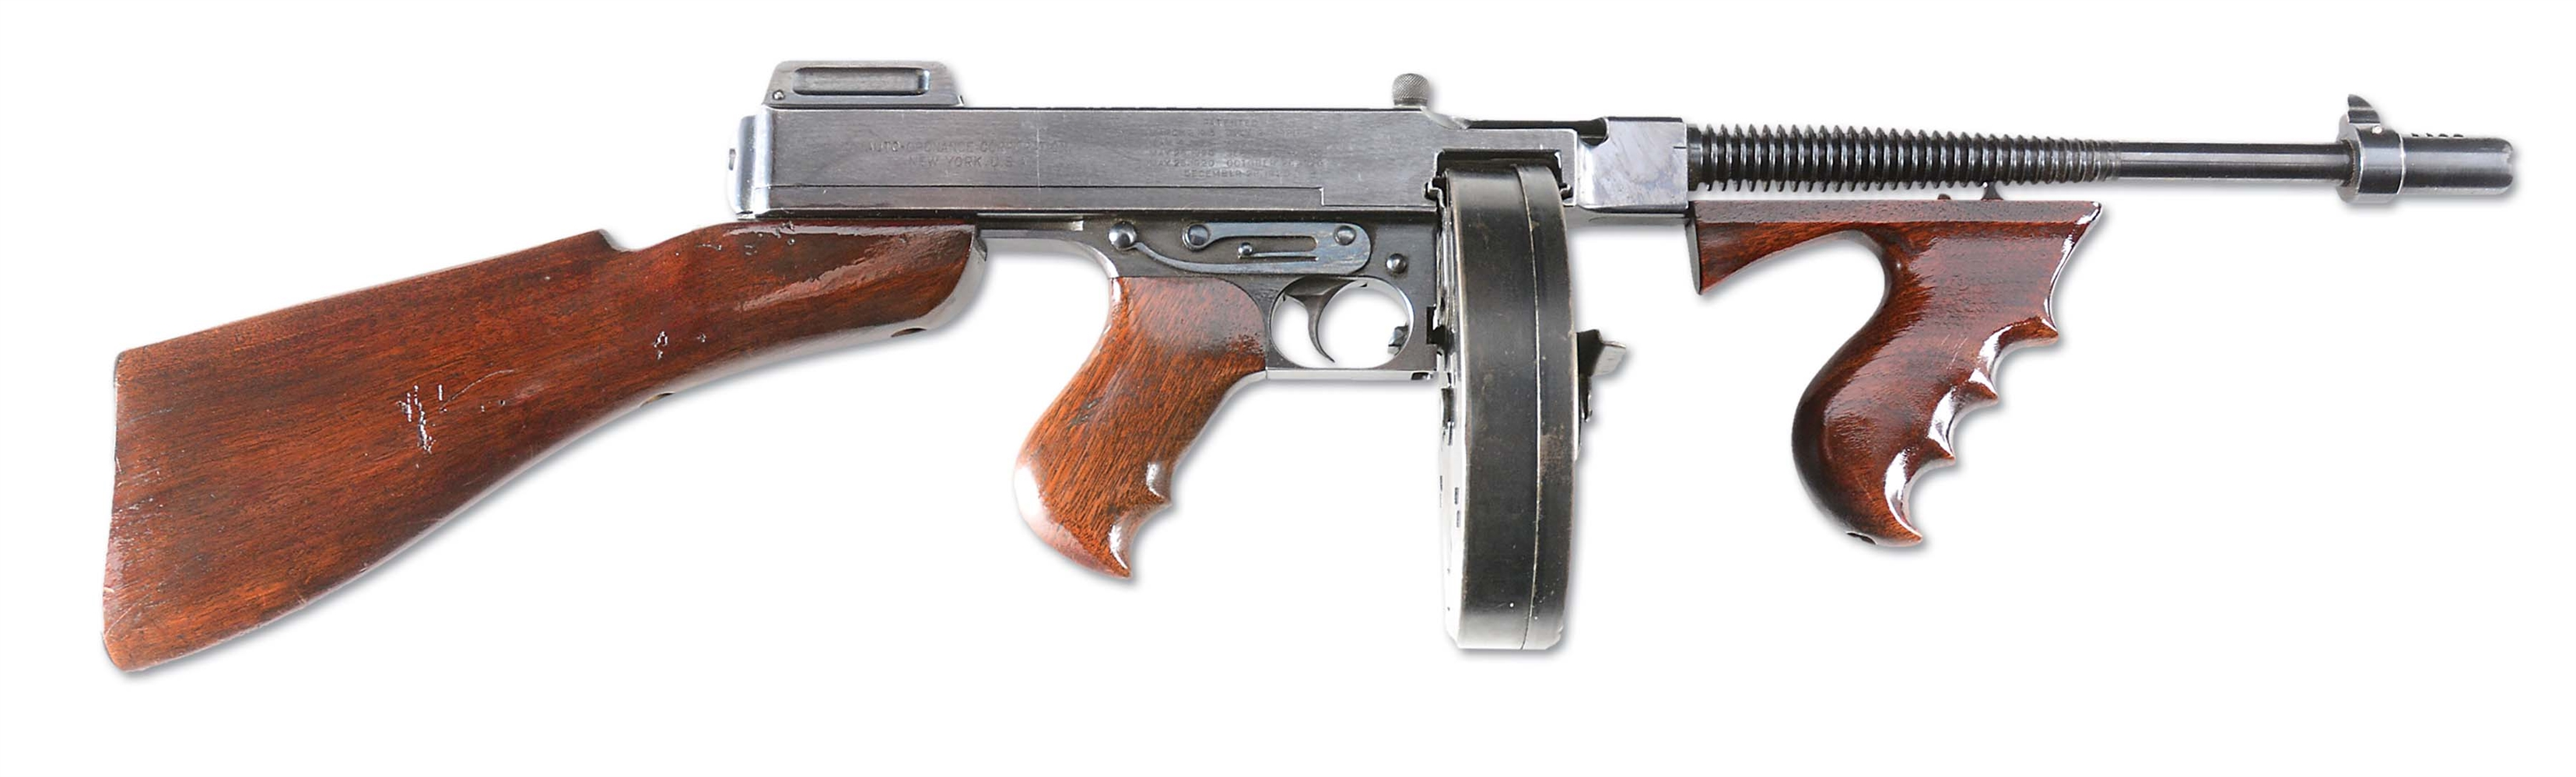 (N) EXCEPTIONAL ORIGINAL FINISH COLT MODEL 1921 AC THOMPSON MACHINE GUN (CURIO & RELIC)